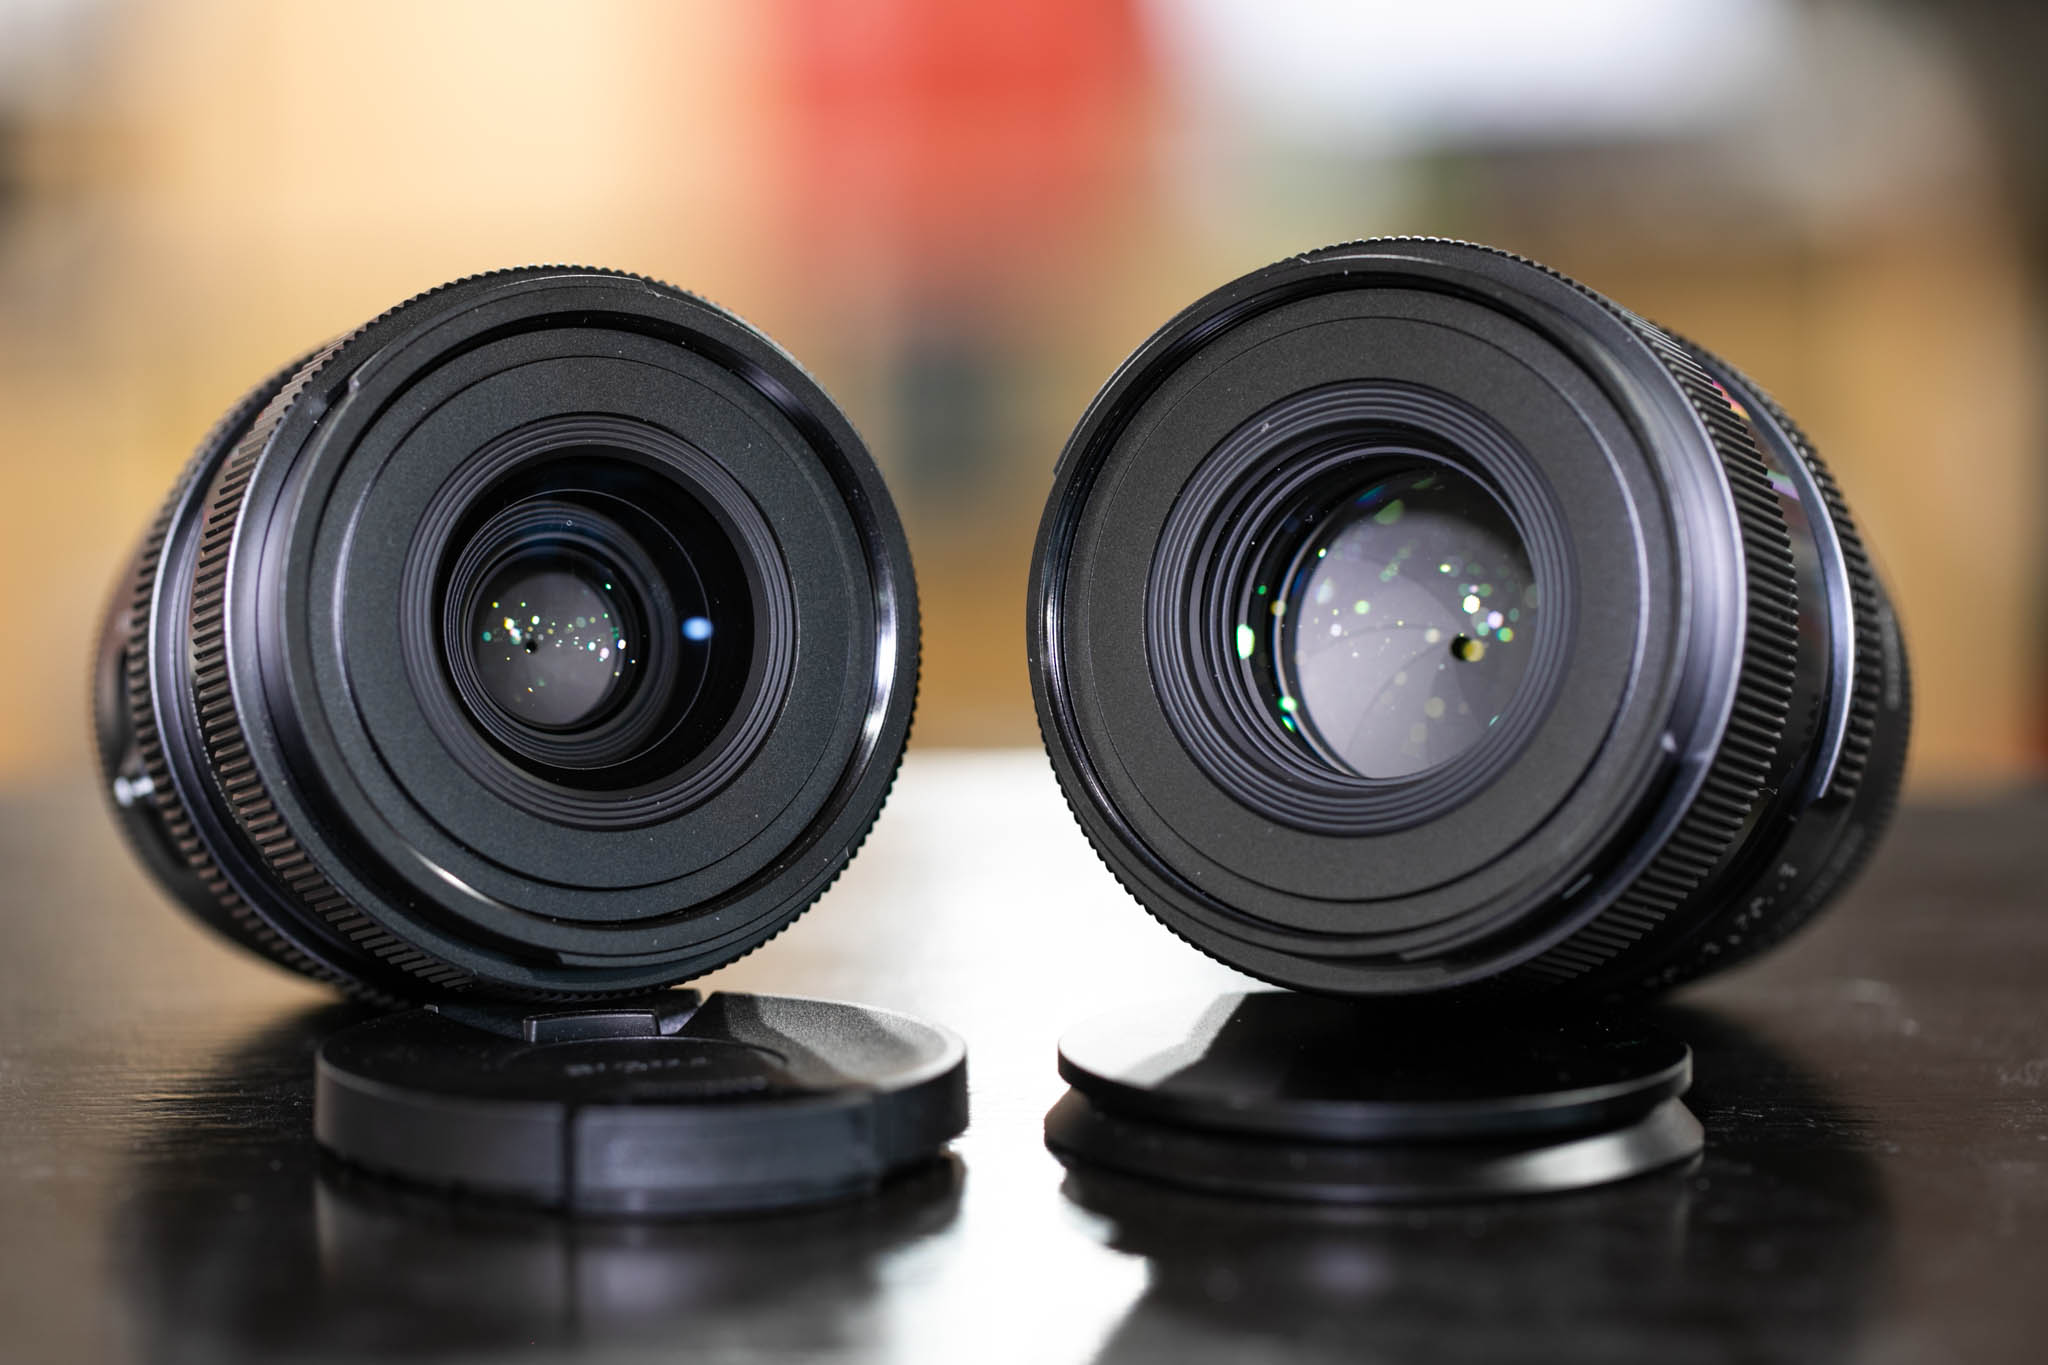 Sigma 35mm f/2 and 65mm f/2 DG DN C - A First Look